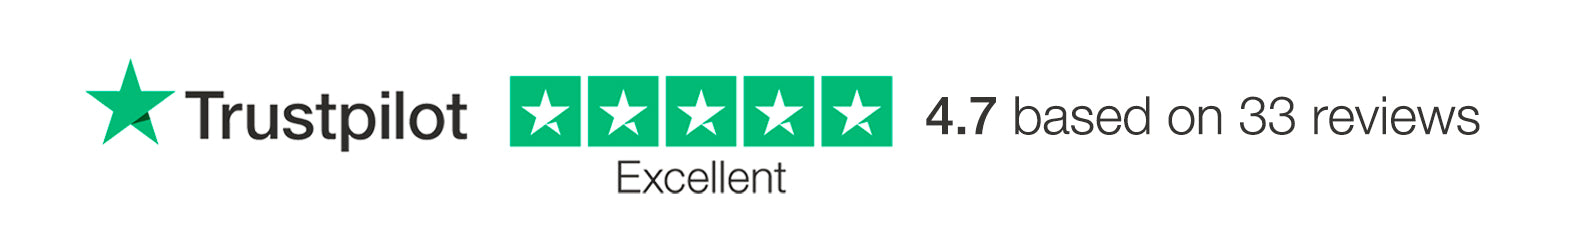 CBD Performance trustpilot reviews